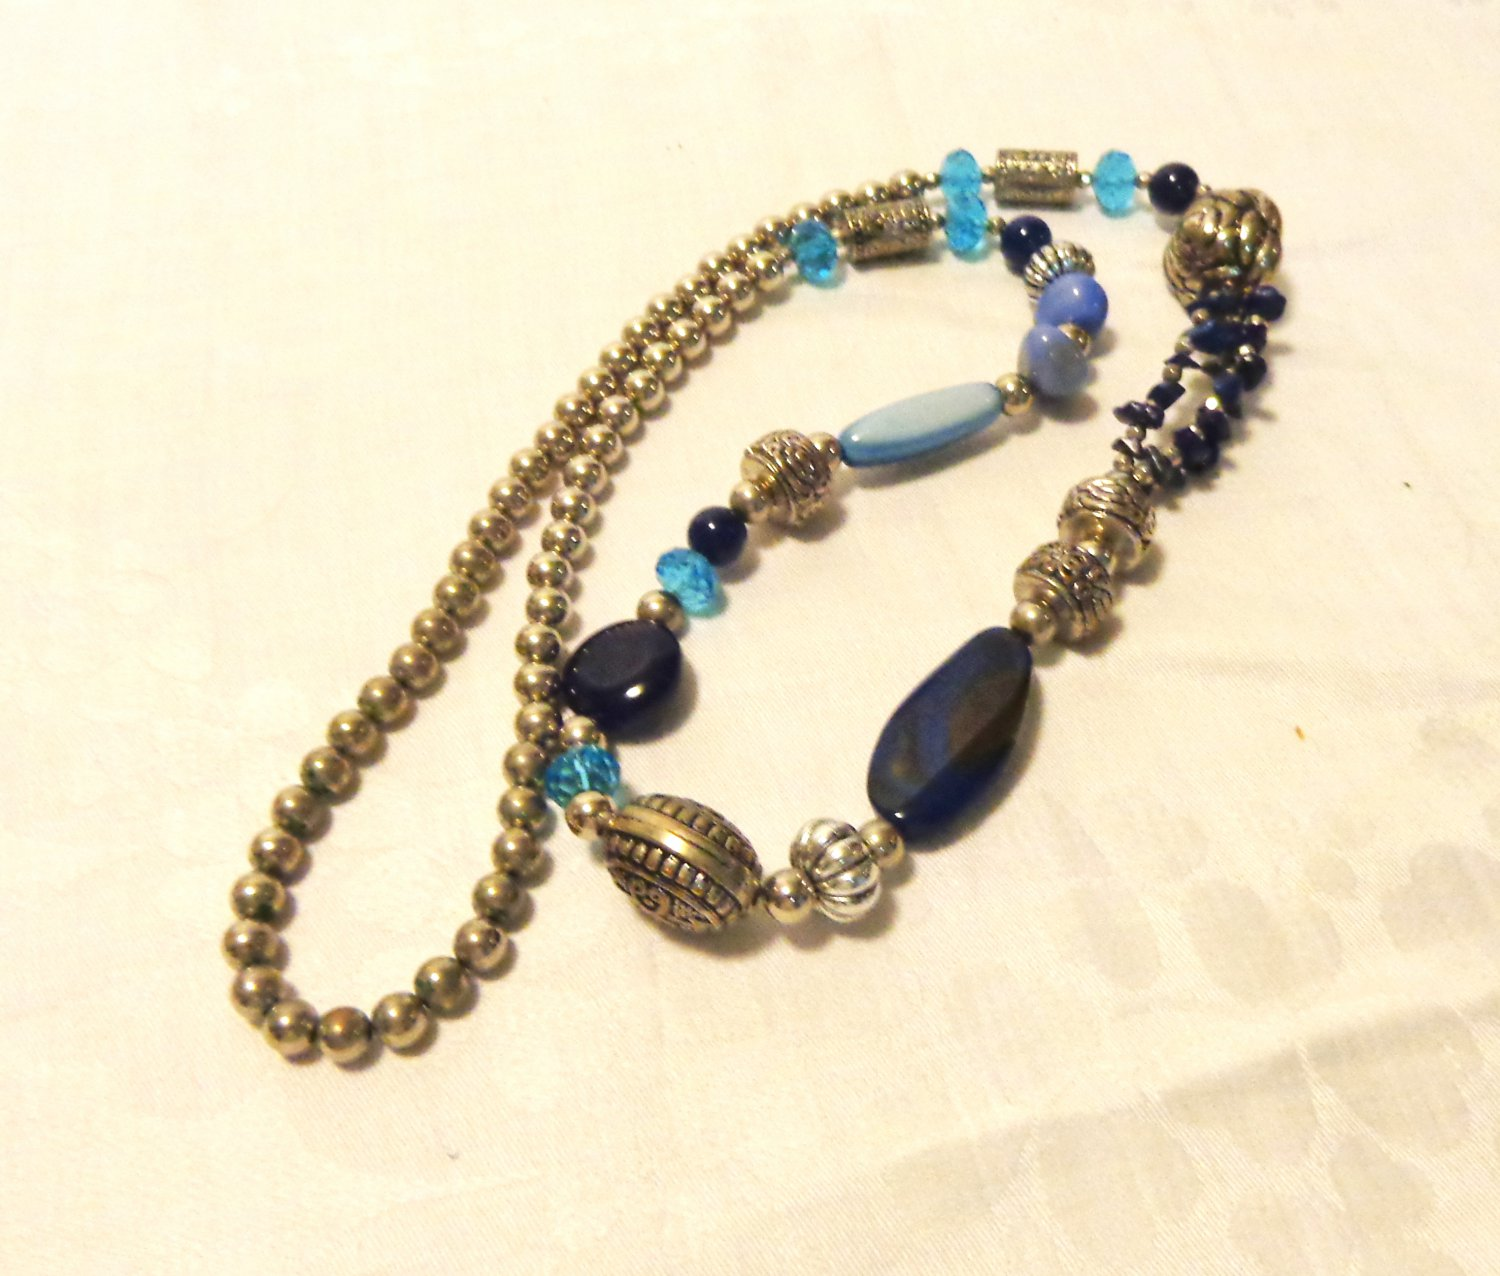 Mixed bead necklace 36 inches real stones blue green silver vintage ll3508